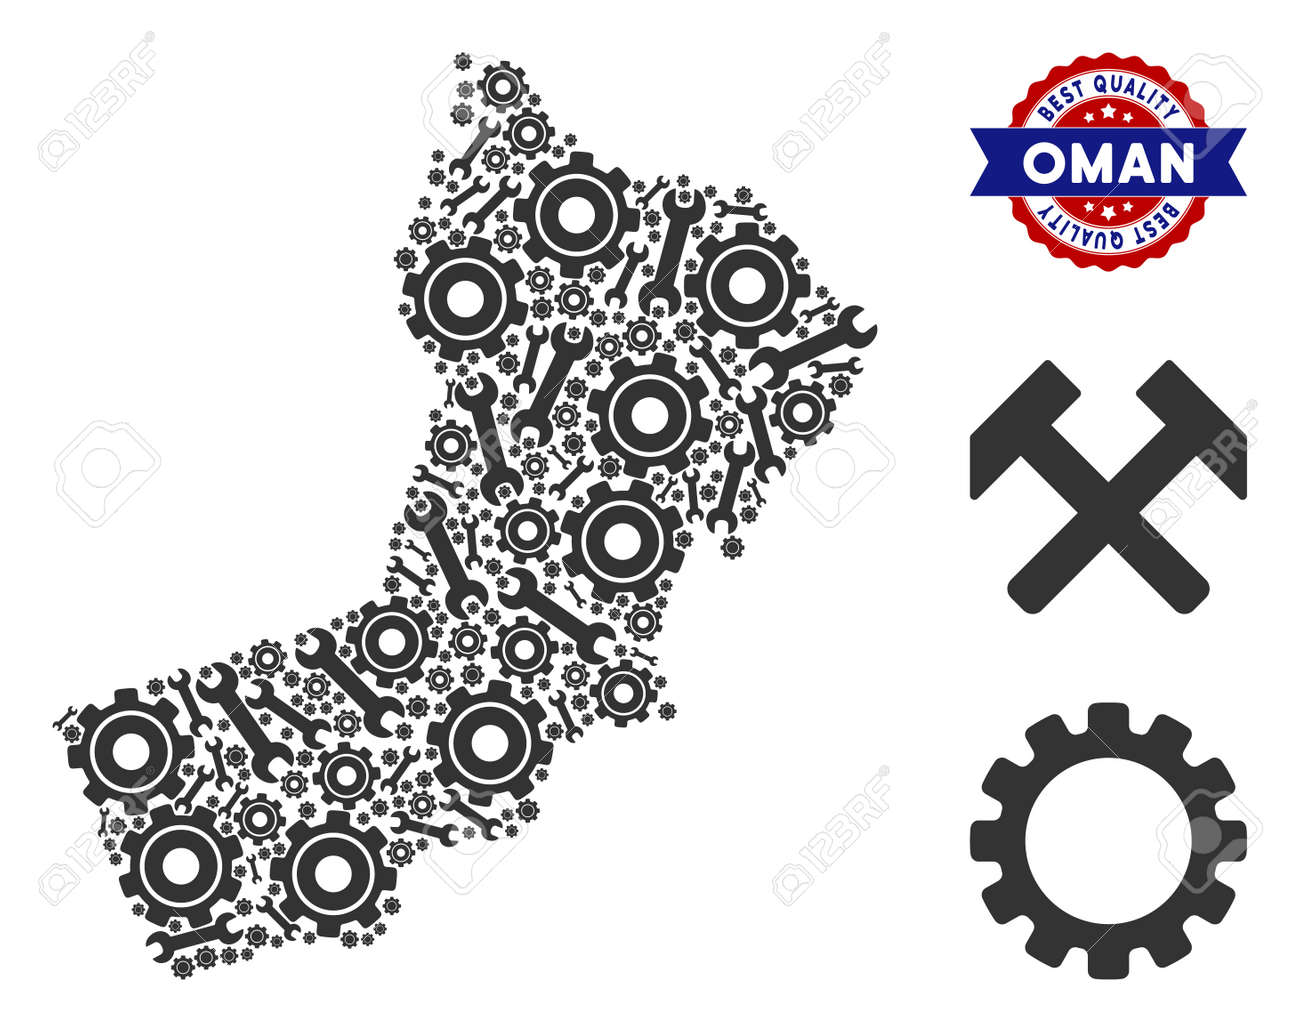 Repair service Oman map mosaic of service tools  Abstract territorial